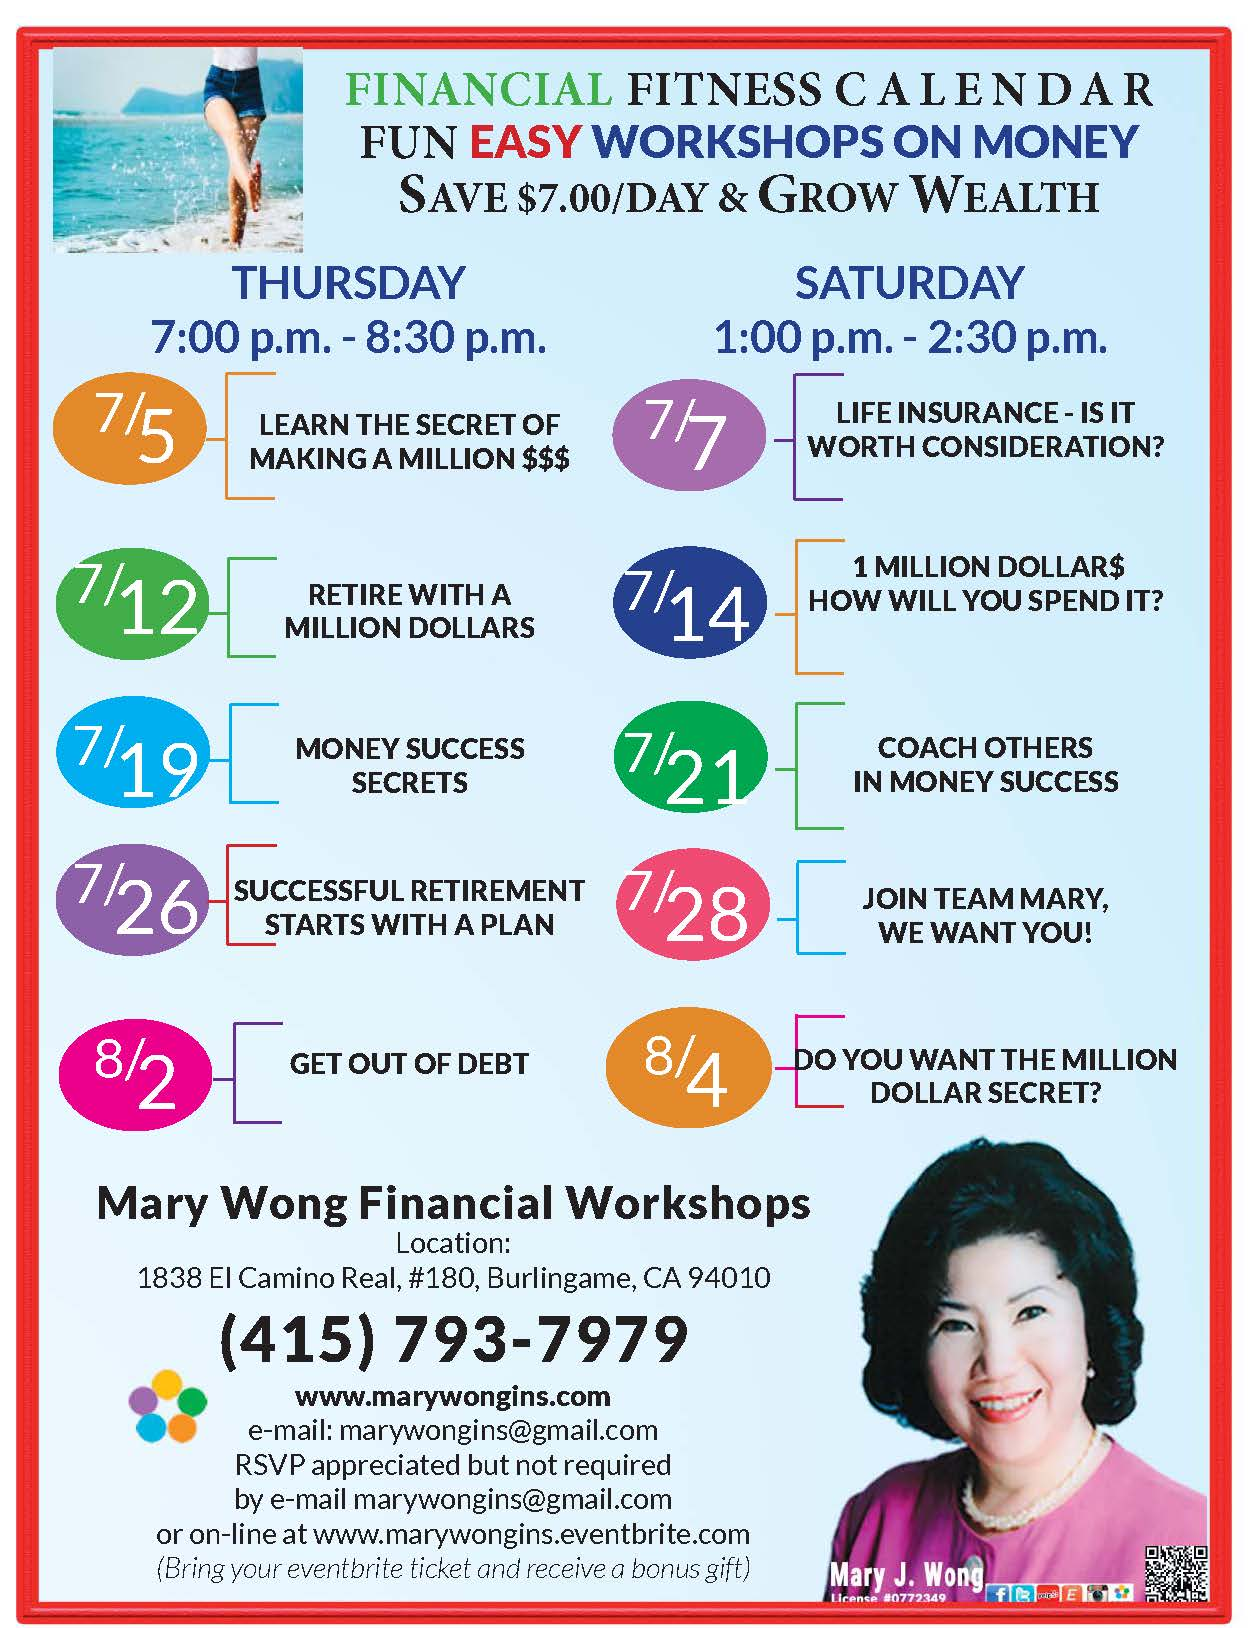 Find, Create, Grow and Keep Your Wealth with knowledge and education offered by Mary Wong Insurance and Financial Services